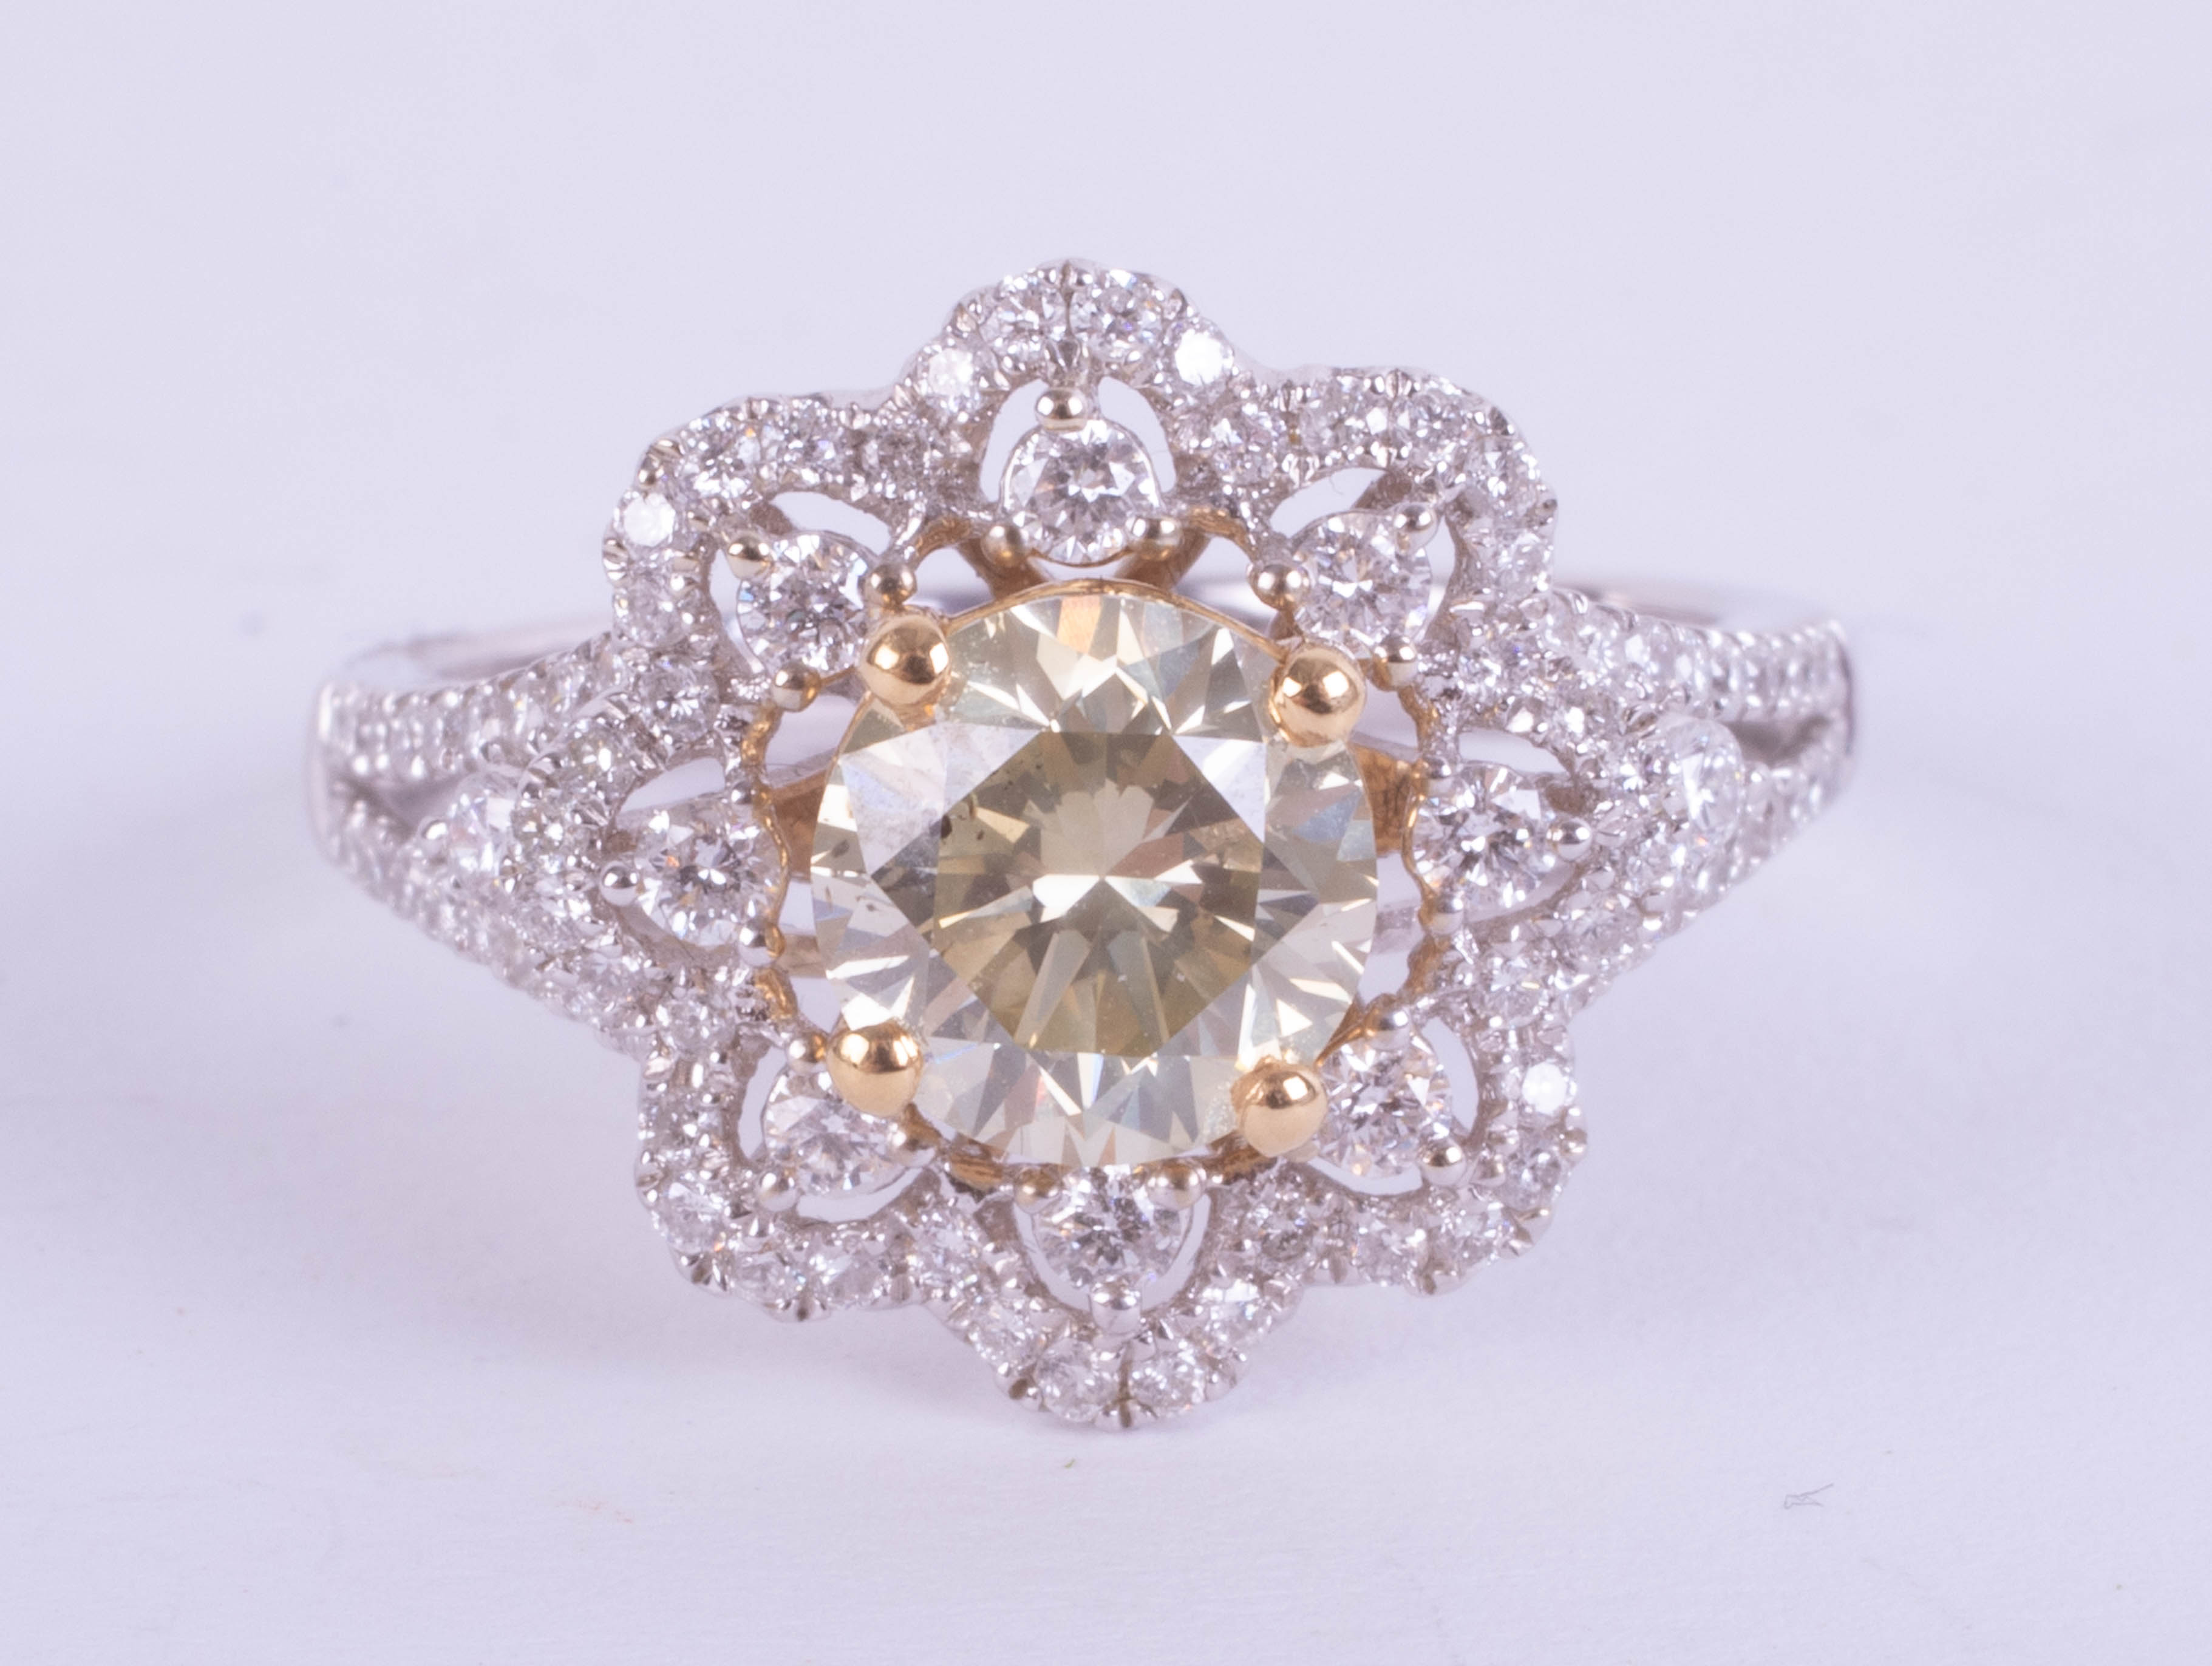 An 18ct white gold daisy-style, ornate dress ring set with a central fancy RBC diamond (1.36ct)